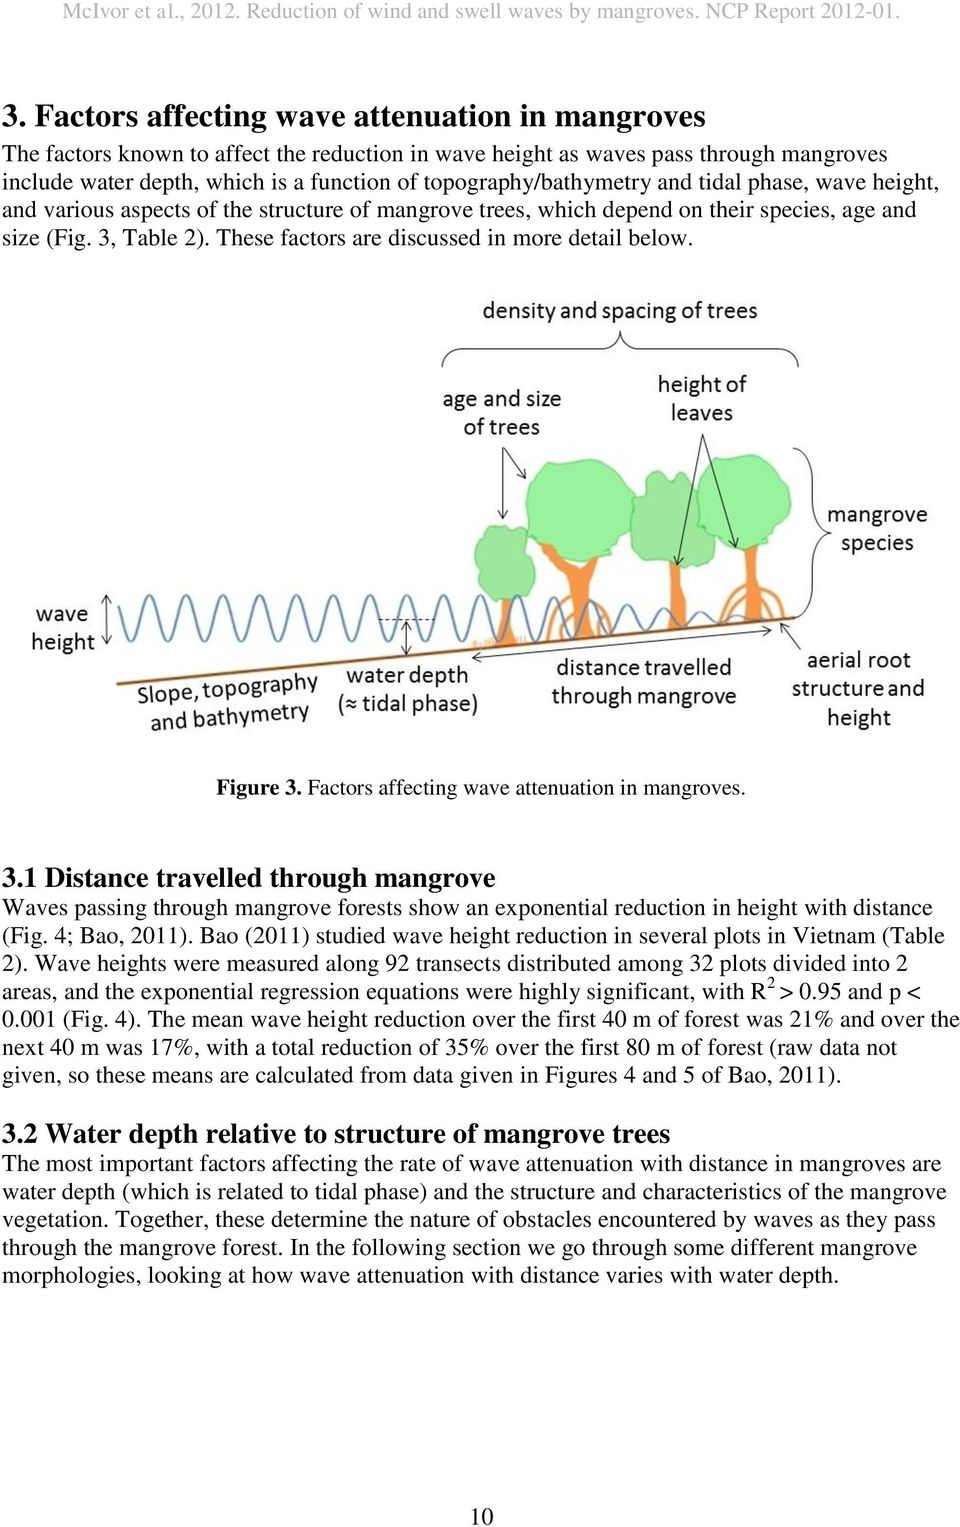 These factors are discussed in more detail below. Figure 3. Factors affecting wave attenuation in mangroves. 3.1 Distance travelled through mangrove Waves passing through mangrove forests show an exponential reduction in height with distance (Fig.